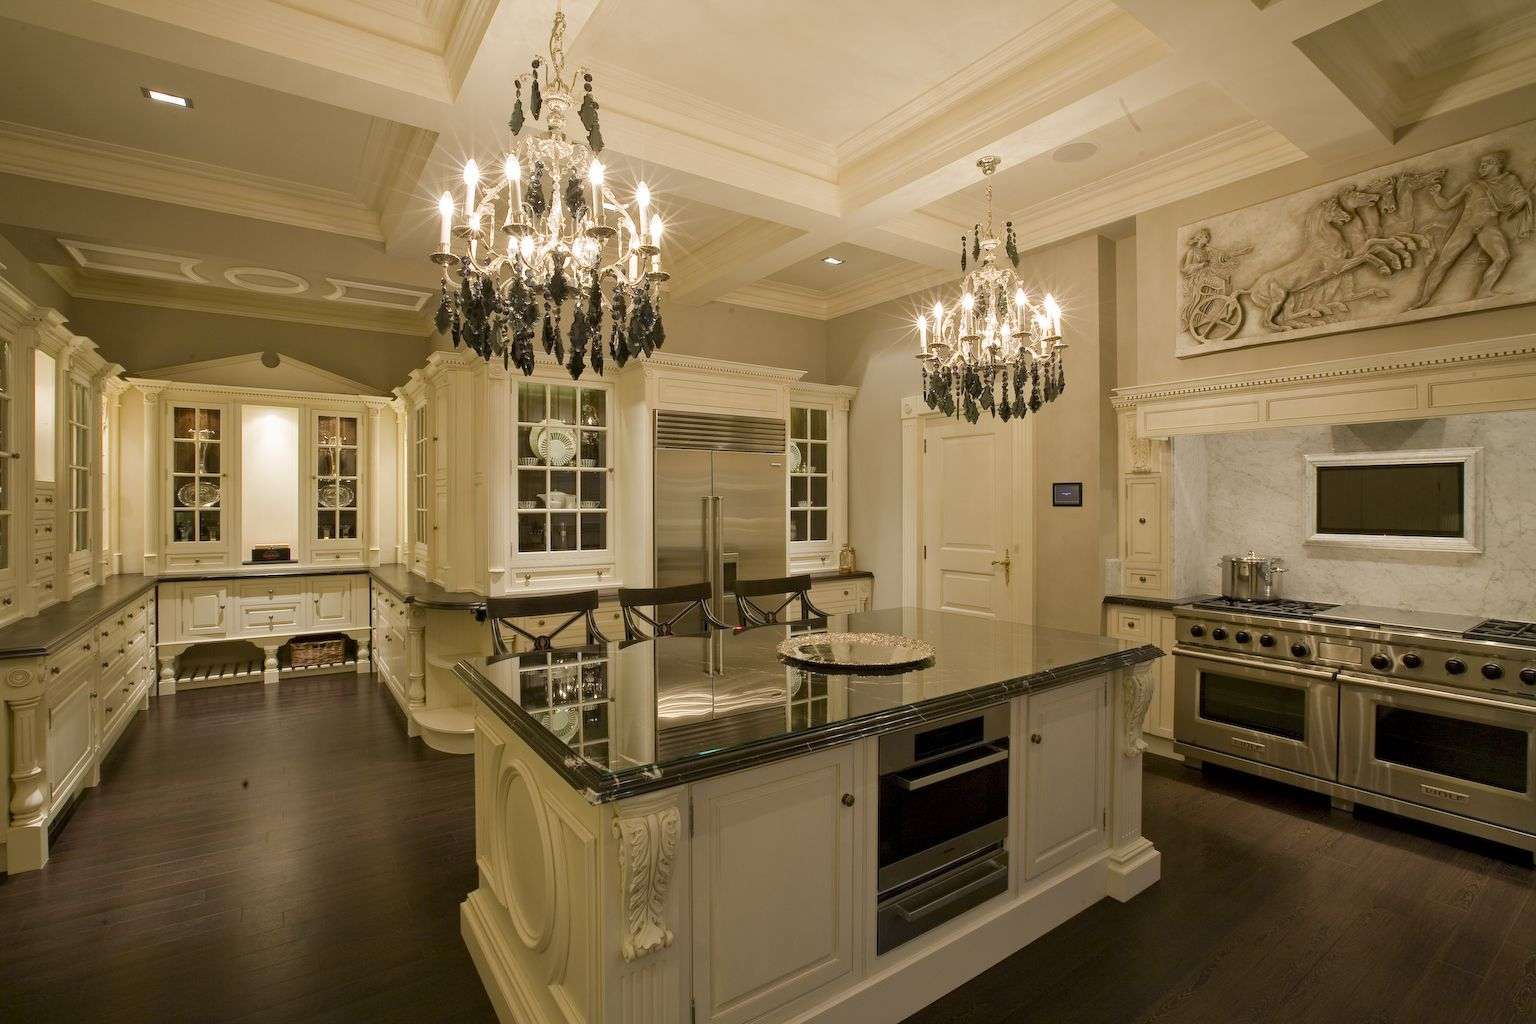 Classic Luxury Kitchen Clive Christian Luxury Kitchen In Creamthe Definition Of Classic